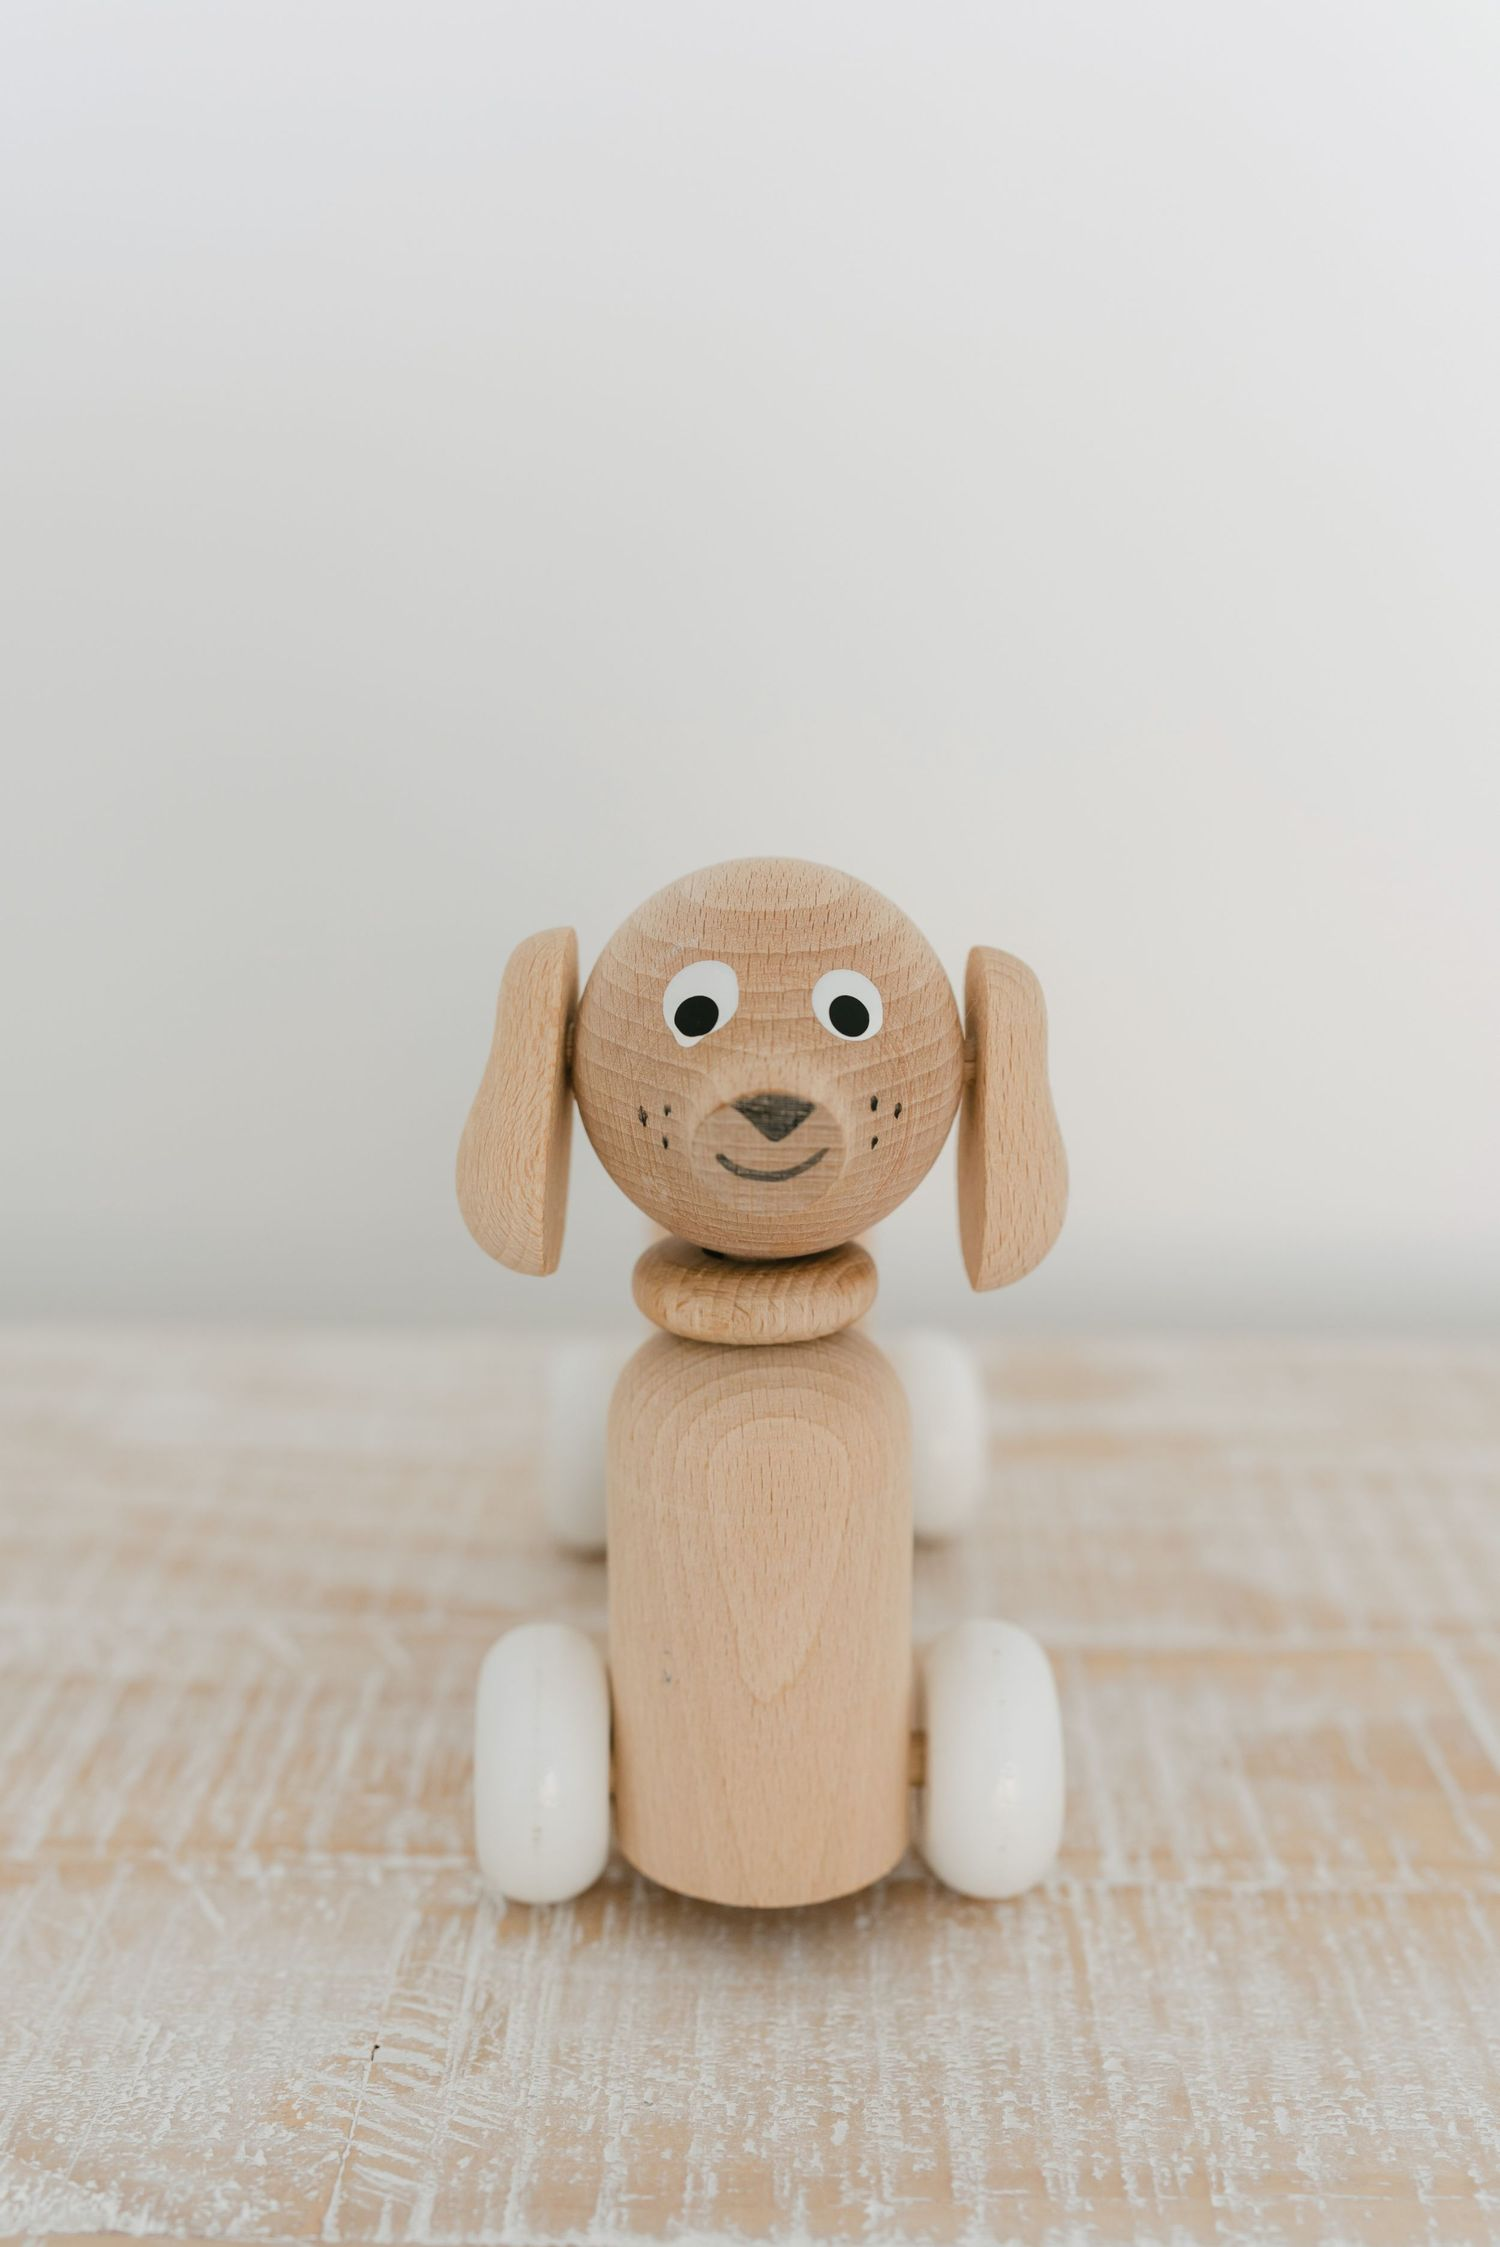 Wooden toys in baby photography studio